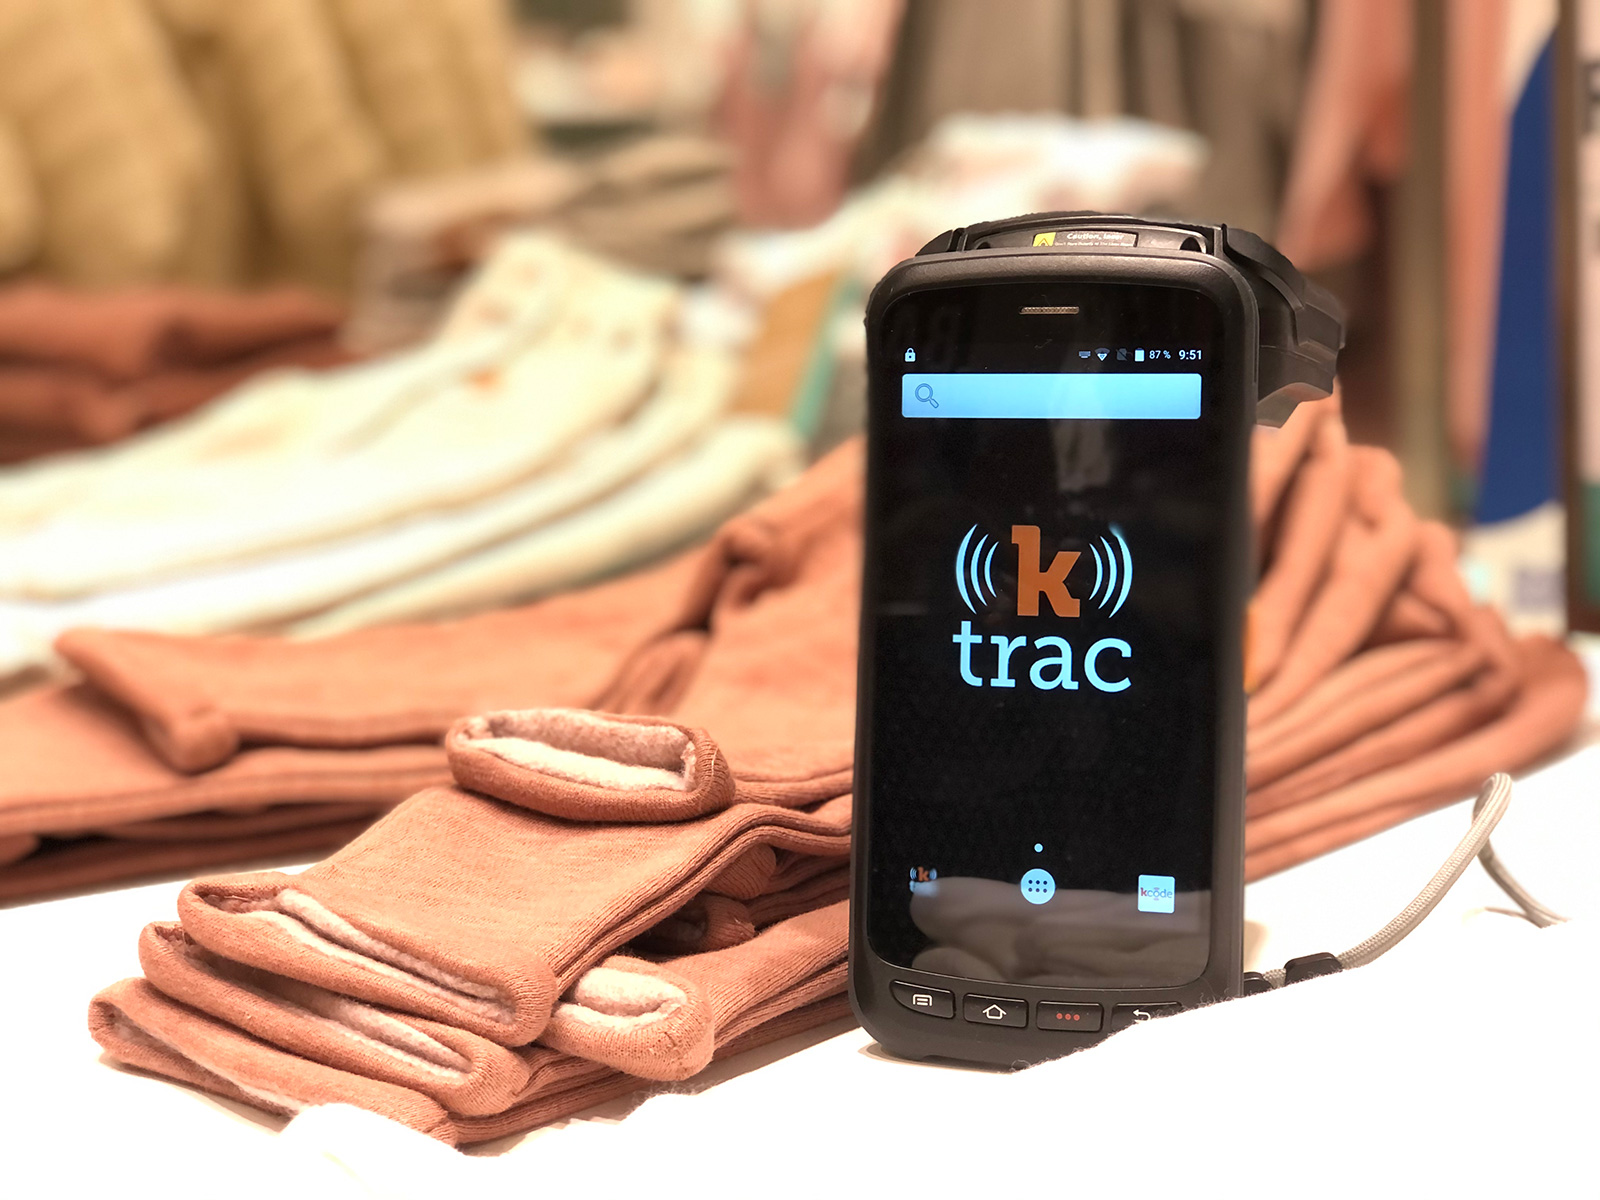 ktrac scanner sitting in front of folded clothing